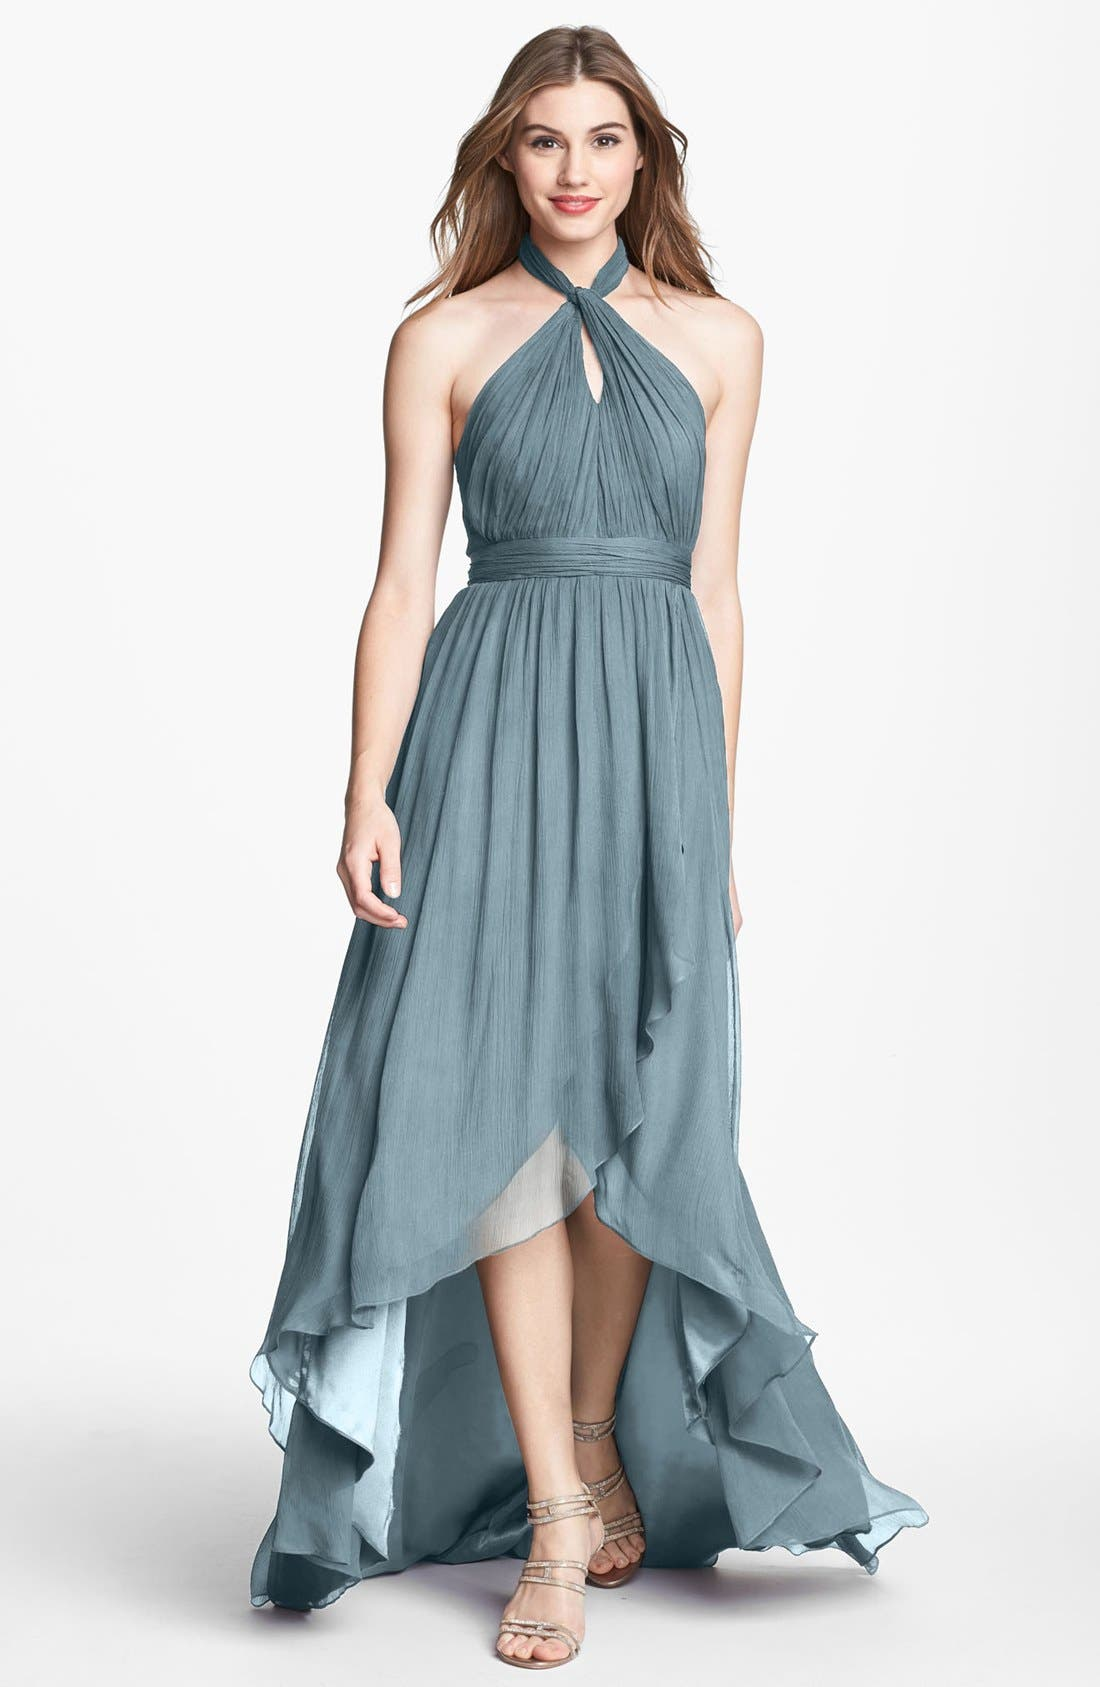 Main Image - Jenny Yoo 'Olivia' Crinkled Chiffon High/Low Halter Dress (Online Only)